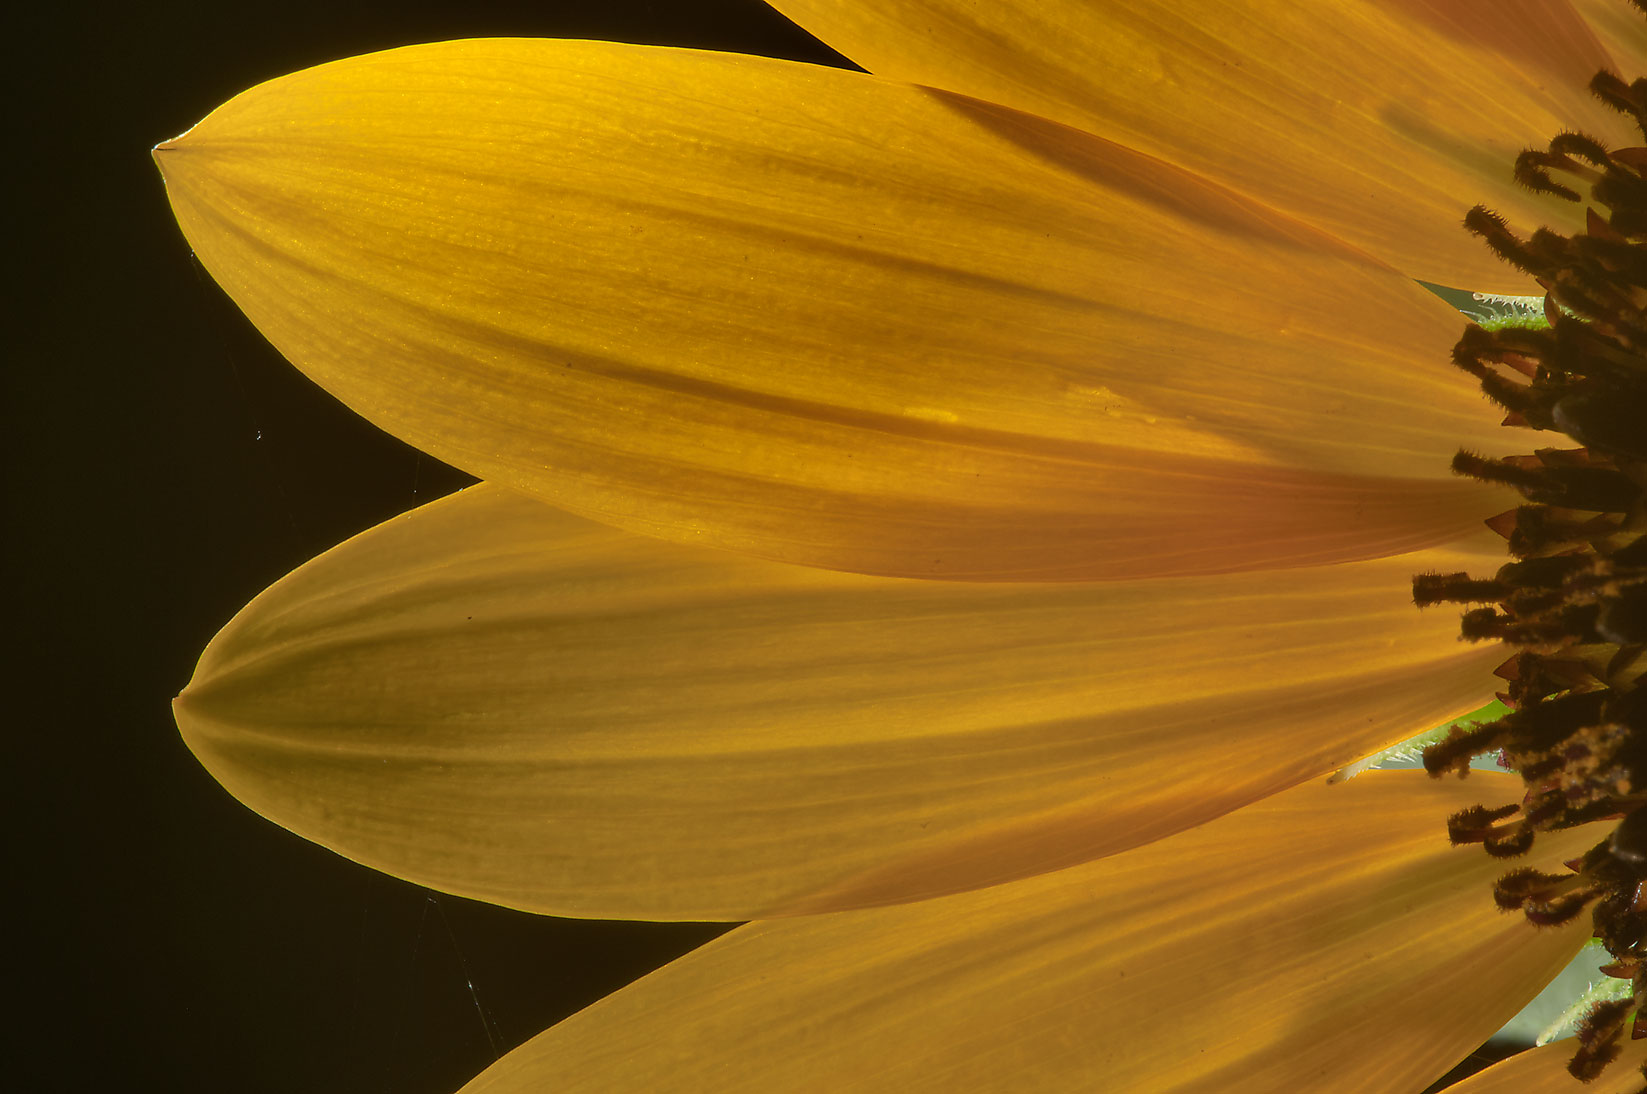 Petals of sunflower (Helianthus) in TAMU...M University. College Station, Texas